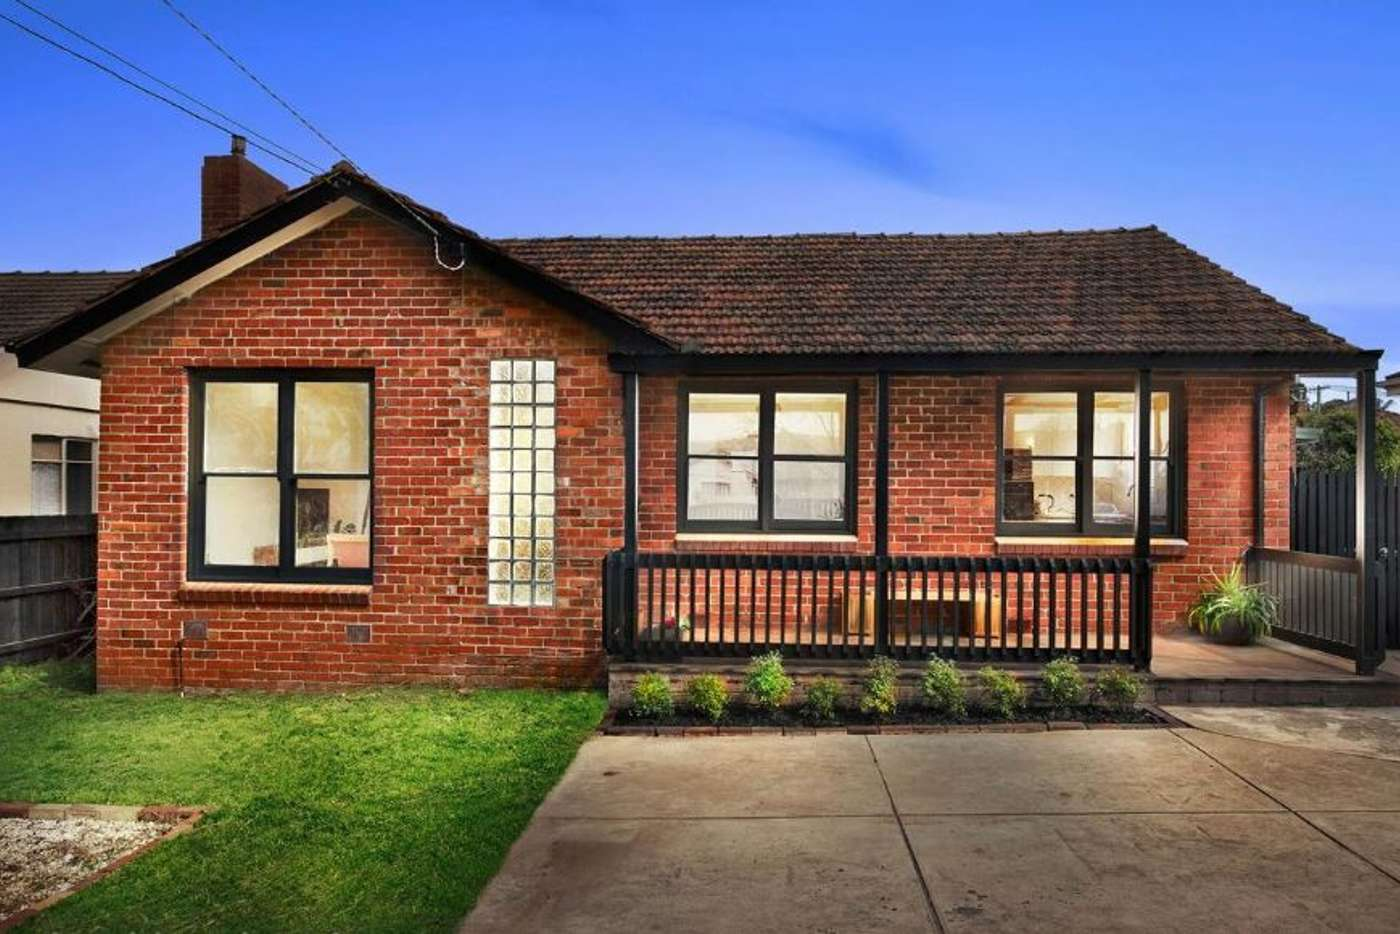 Main view of Homely house listing, 141 Albert Street, Preston VIC 3072